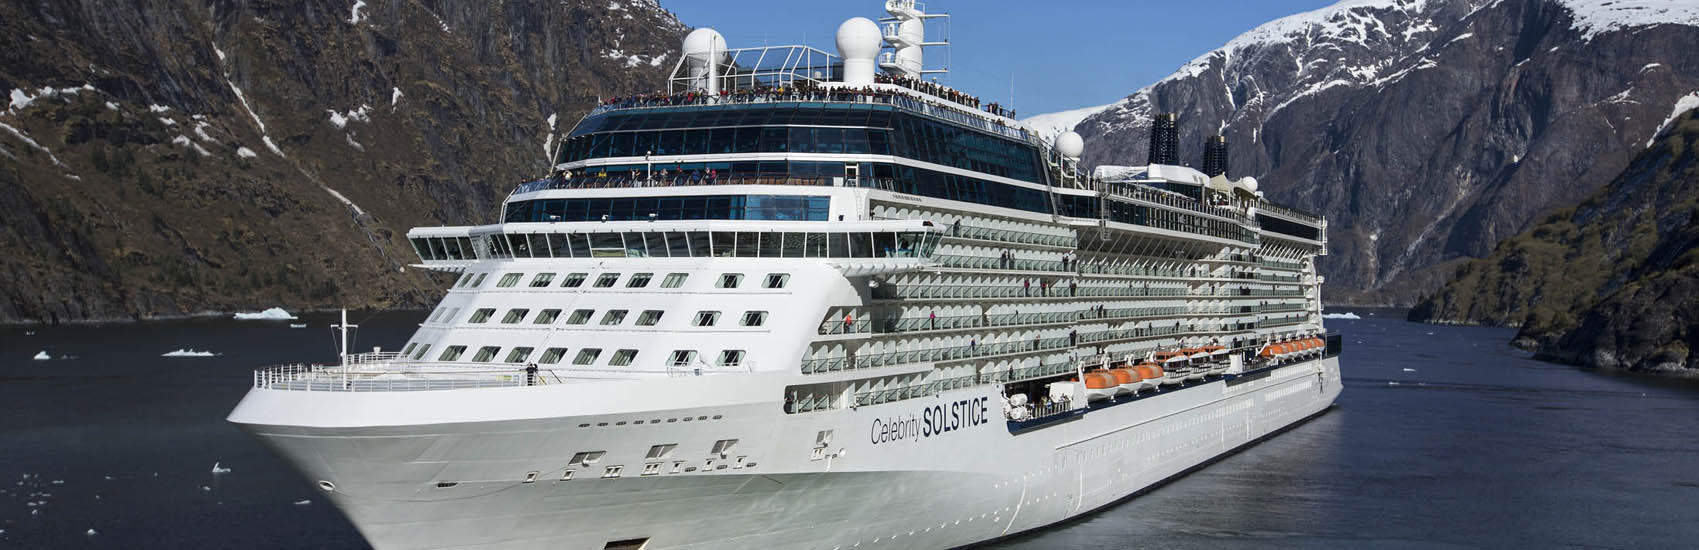 Save with Celebrity Cruises 3